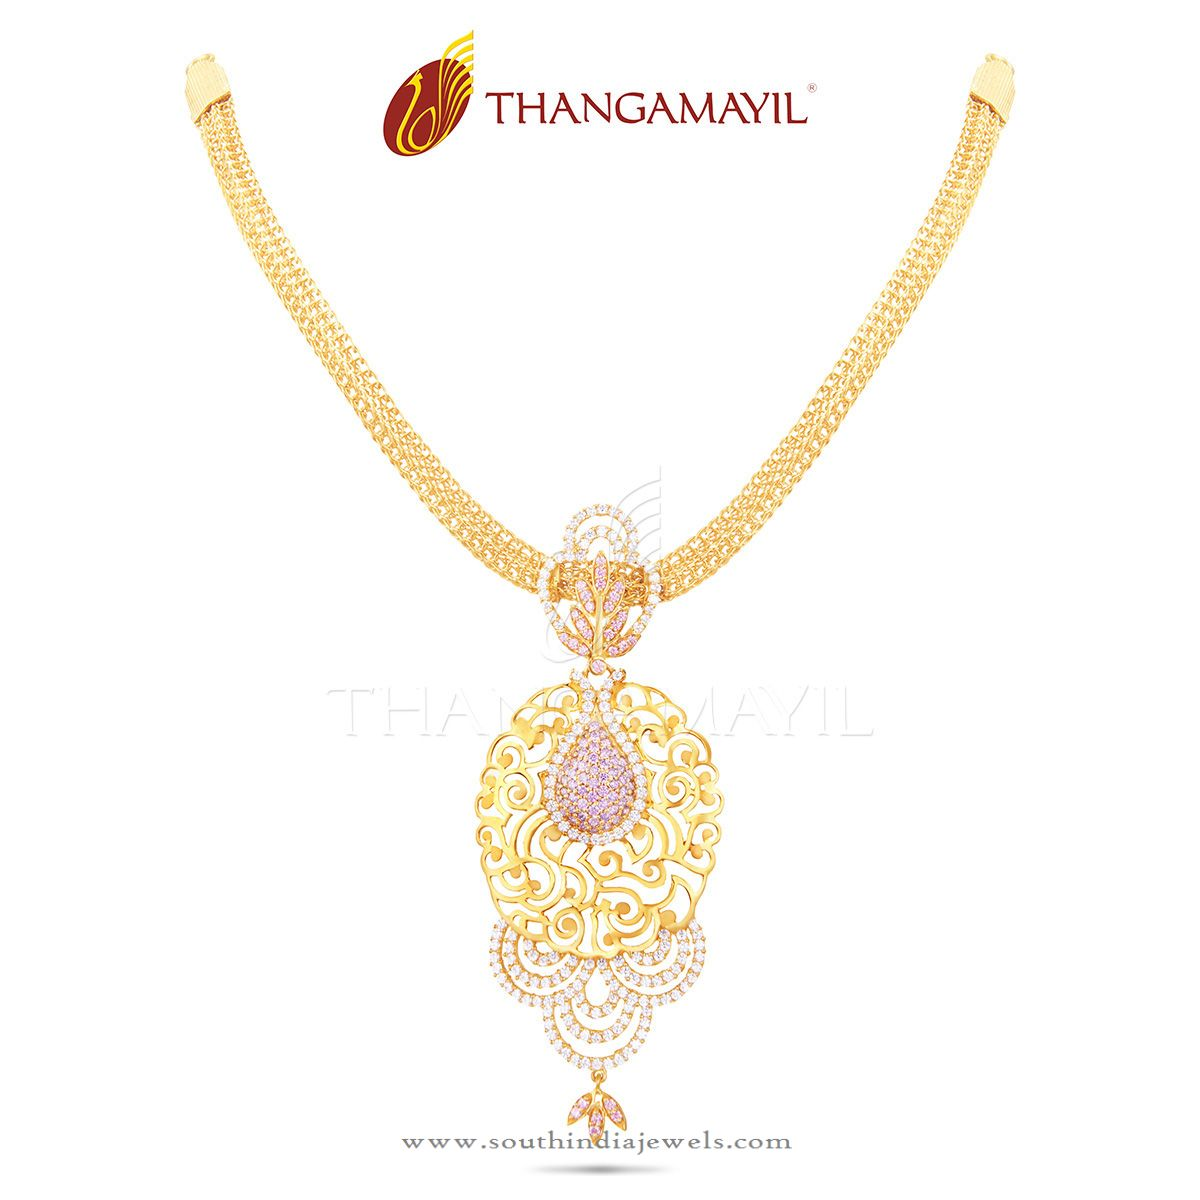 Light Weight Gold Necklace with Stone Pendant ~ South India Jewels